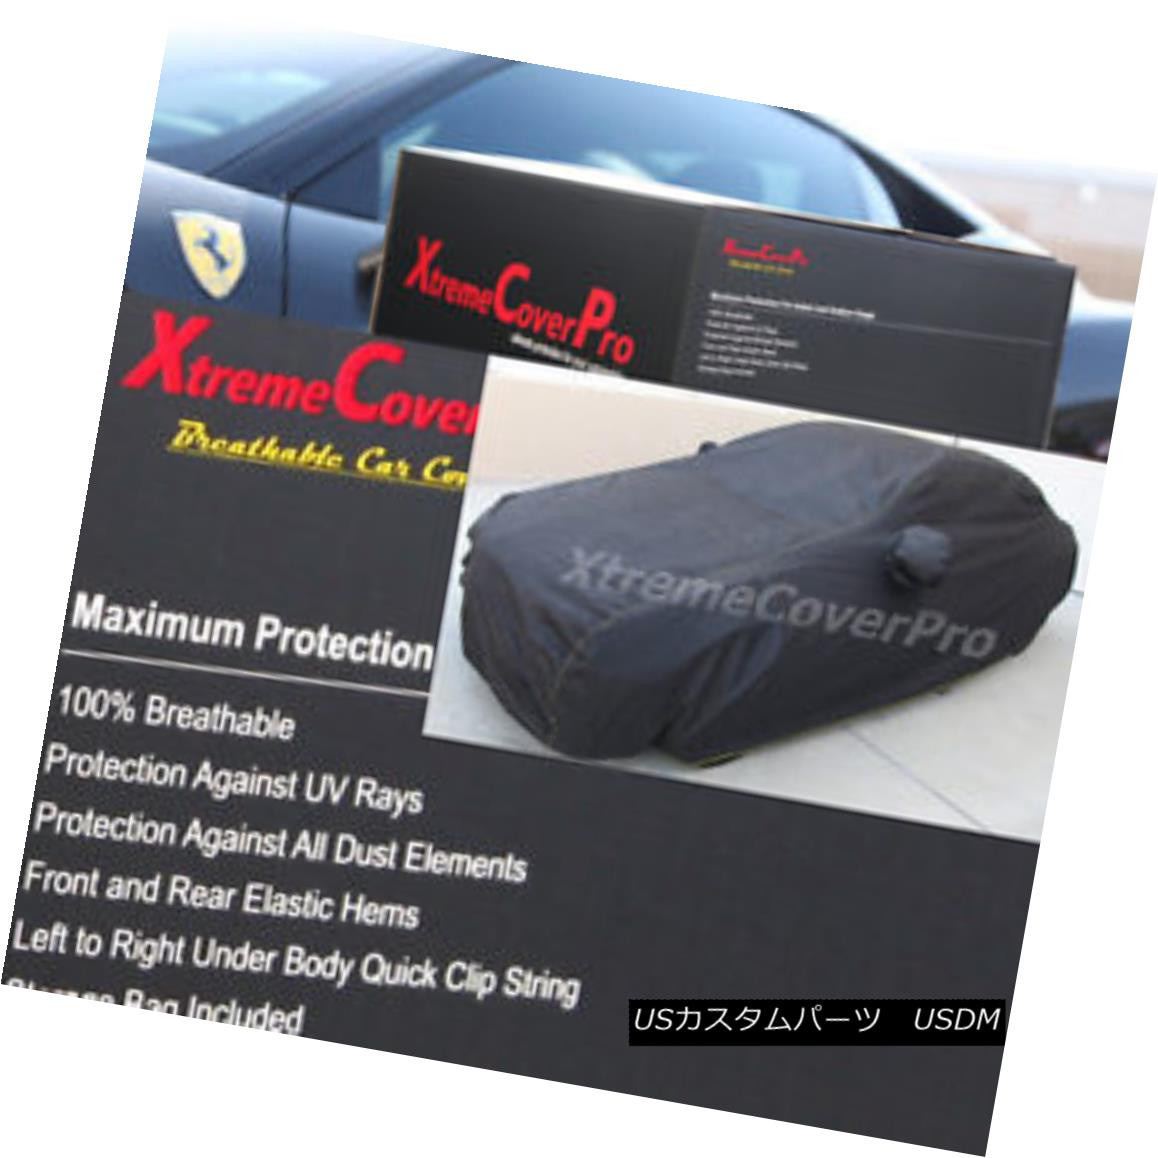 カーカバー 2016 2017 PORSCHE 911 CARRERA C2 C2S BREATHABLE CAR COVER W/MIRROR POCKET -BLACK 2016 2017 PORSCHE 911 CARRERA C2 C2S走行車カバー/ミラーポケット-BLACK